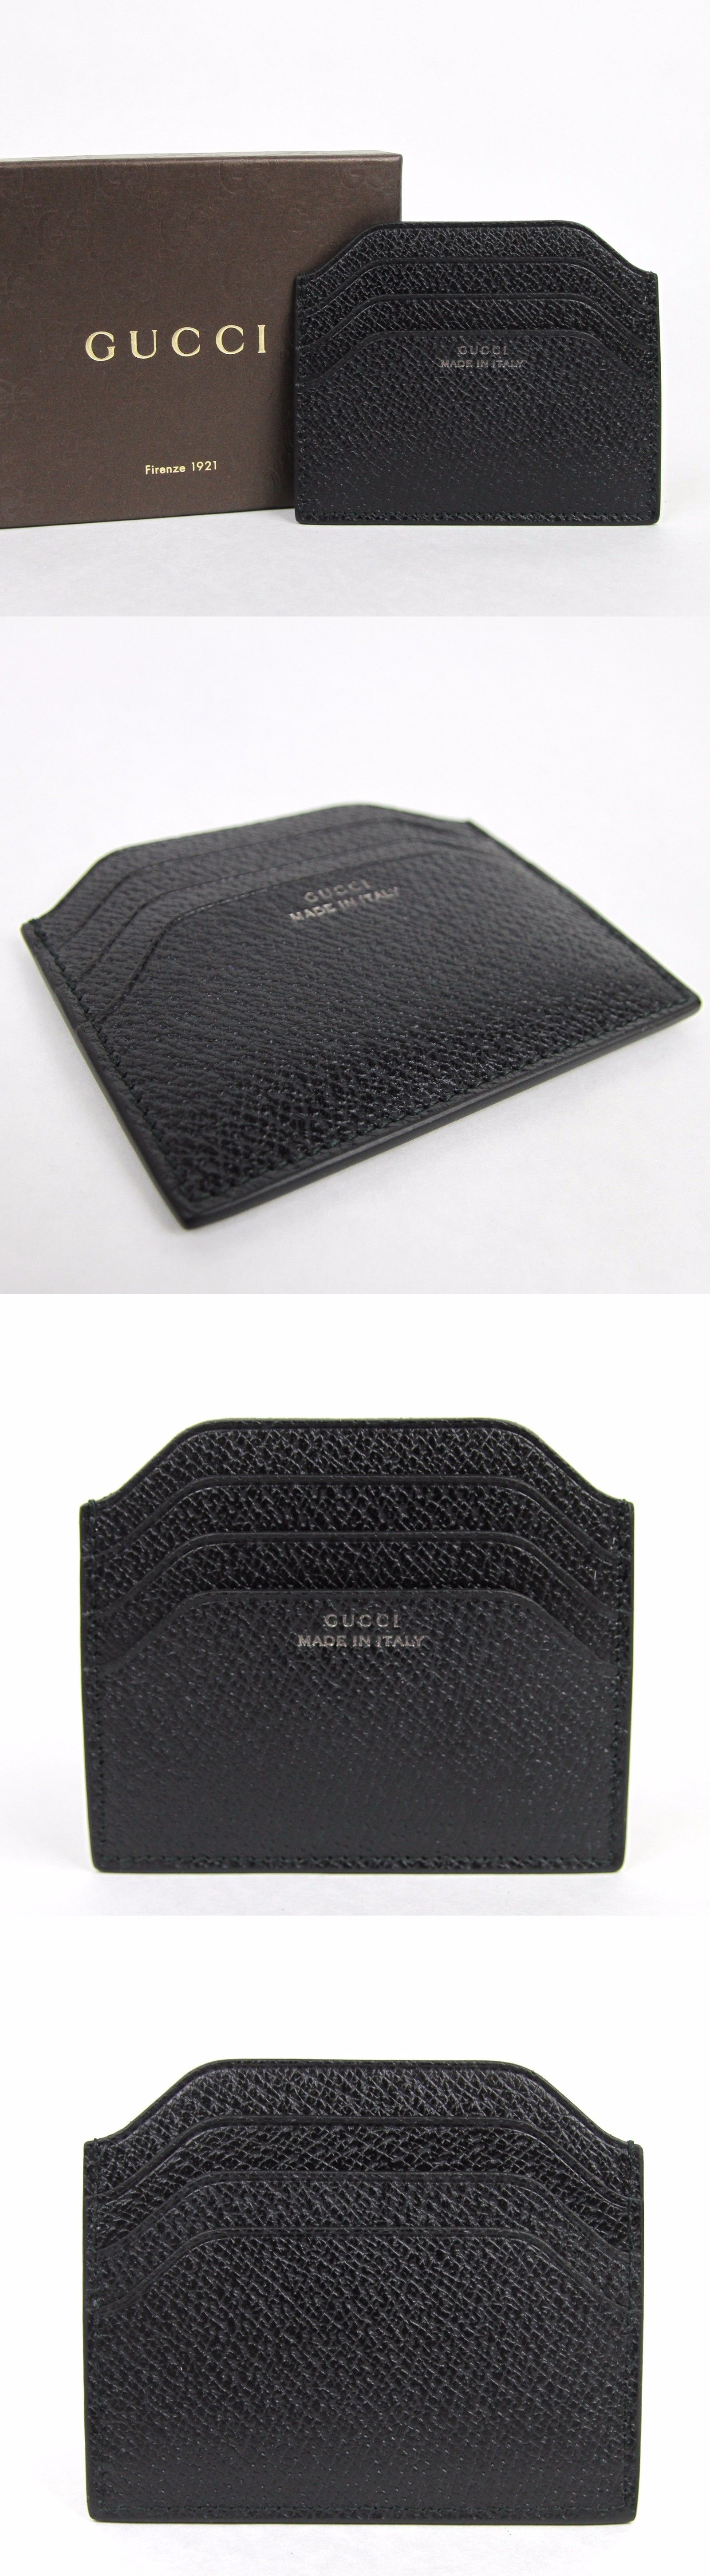 Business and credit card cases 105860 new gucci men s black business and credit card cases 105860 new gucci men s black trademark leather card holder colourmoves